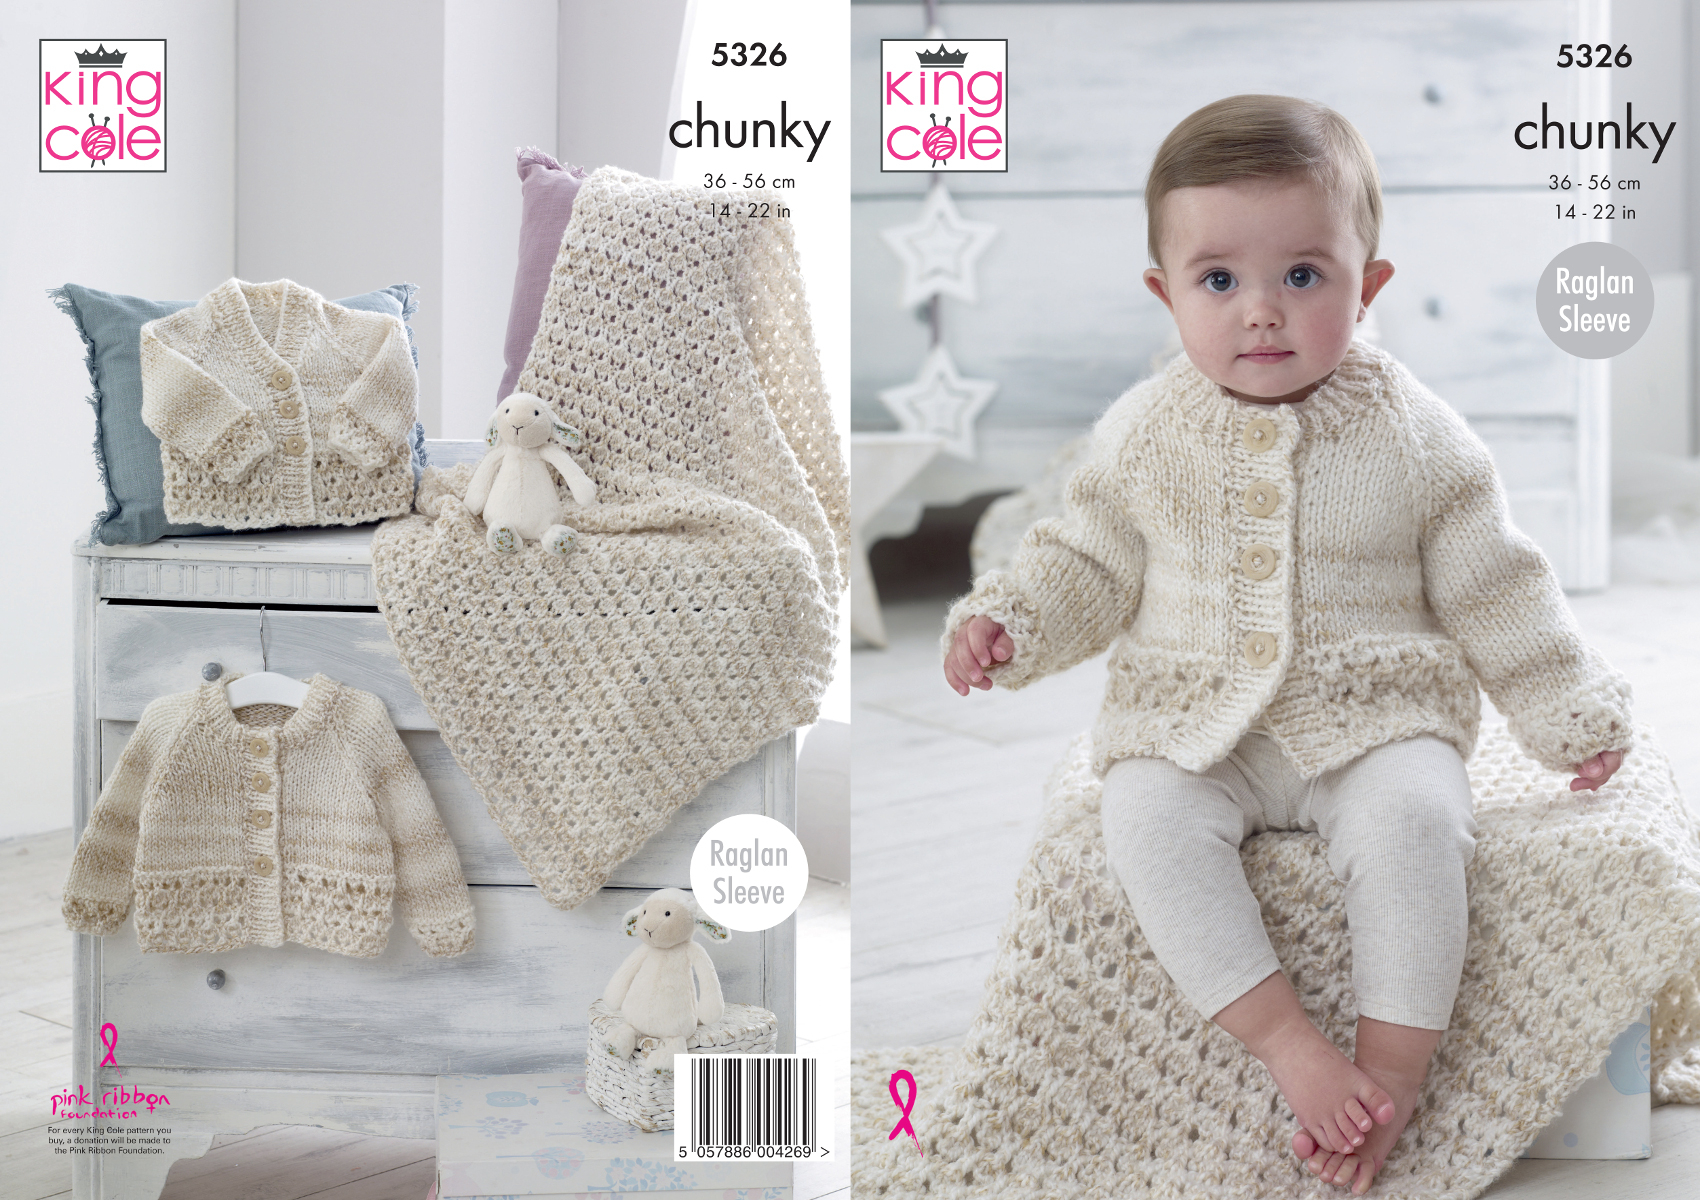 Baby Girl Blanket Knitting Patterns Details About Chunky Knitting Pattern King Cole Ba Round Or V Neck Cardigan Blanket 5326